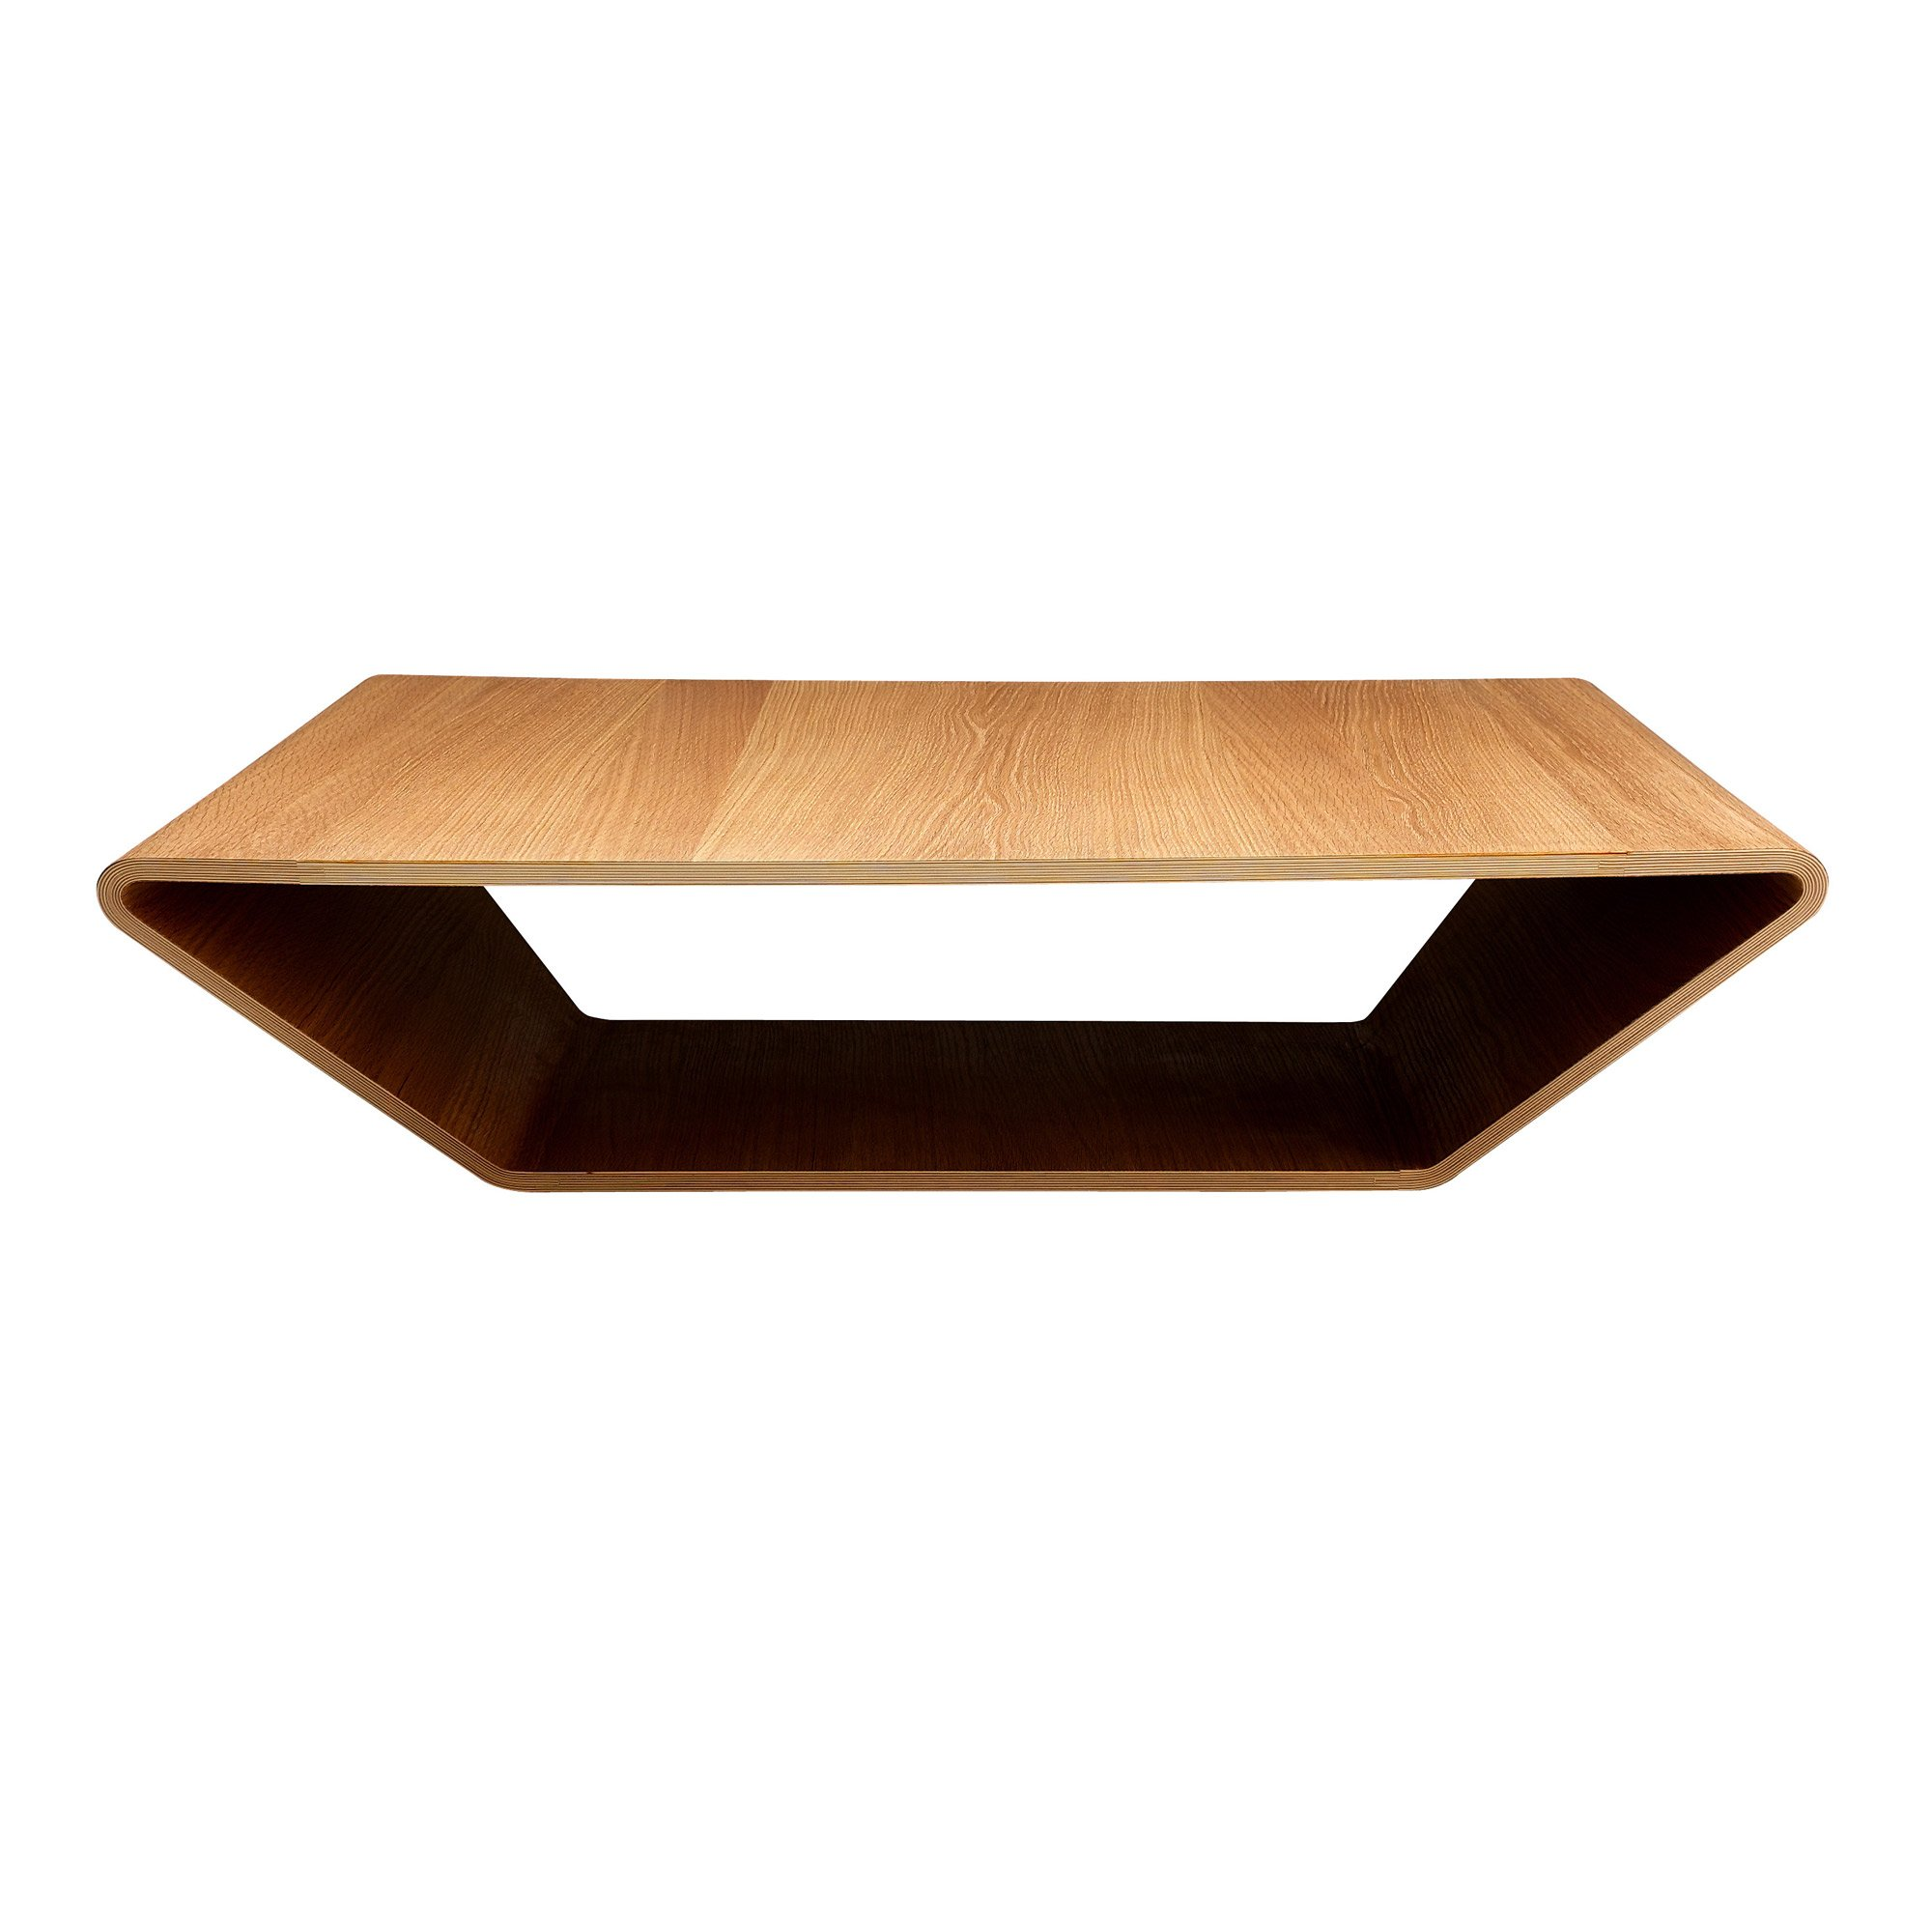 Brasilia coffee table 120cm